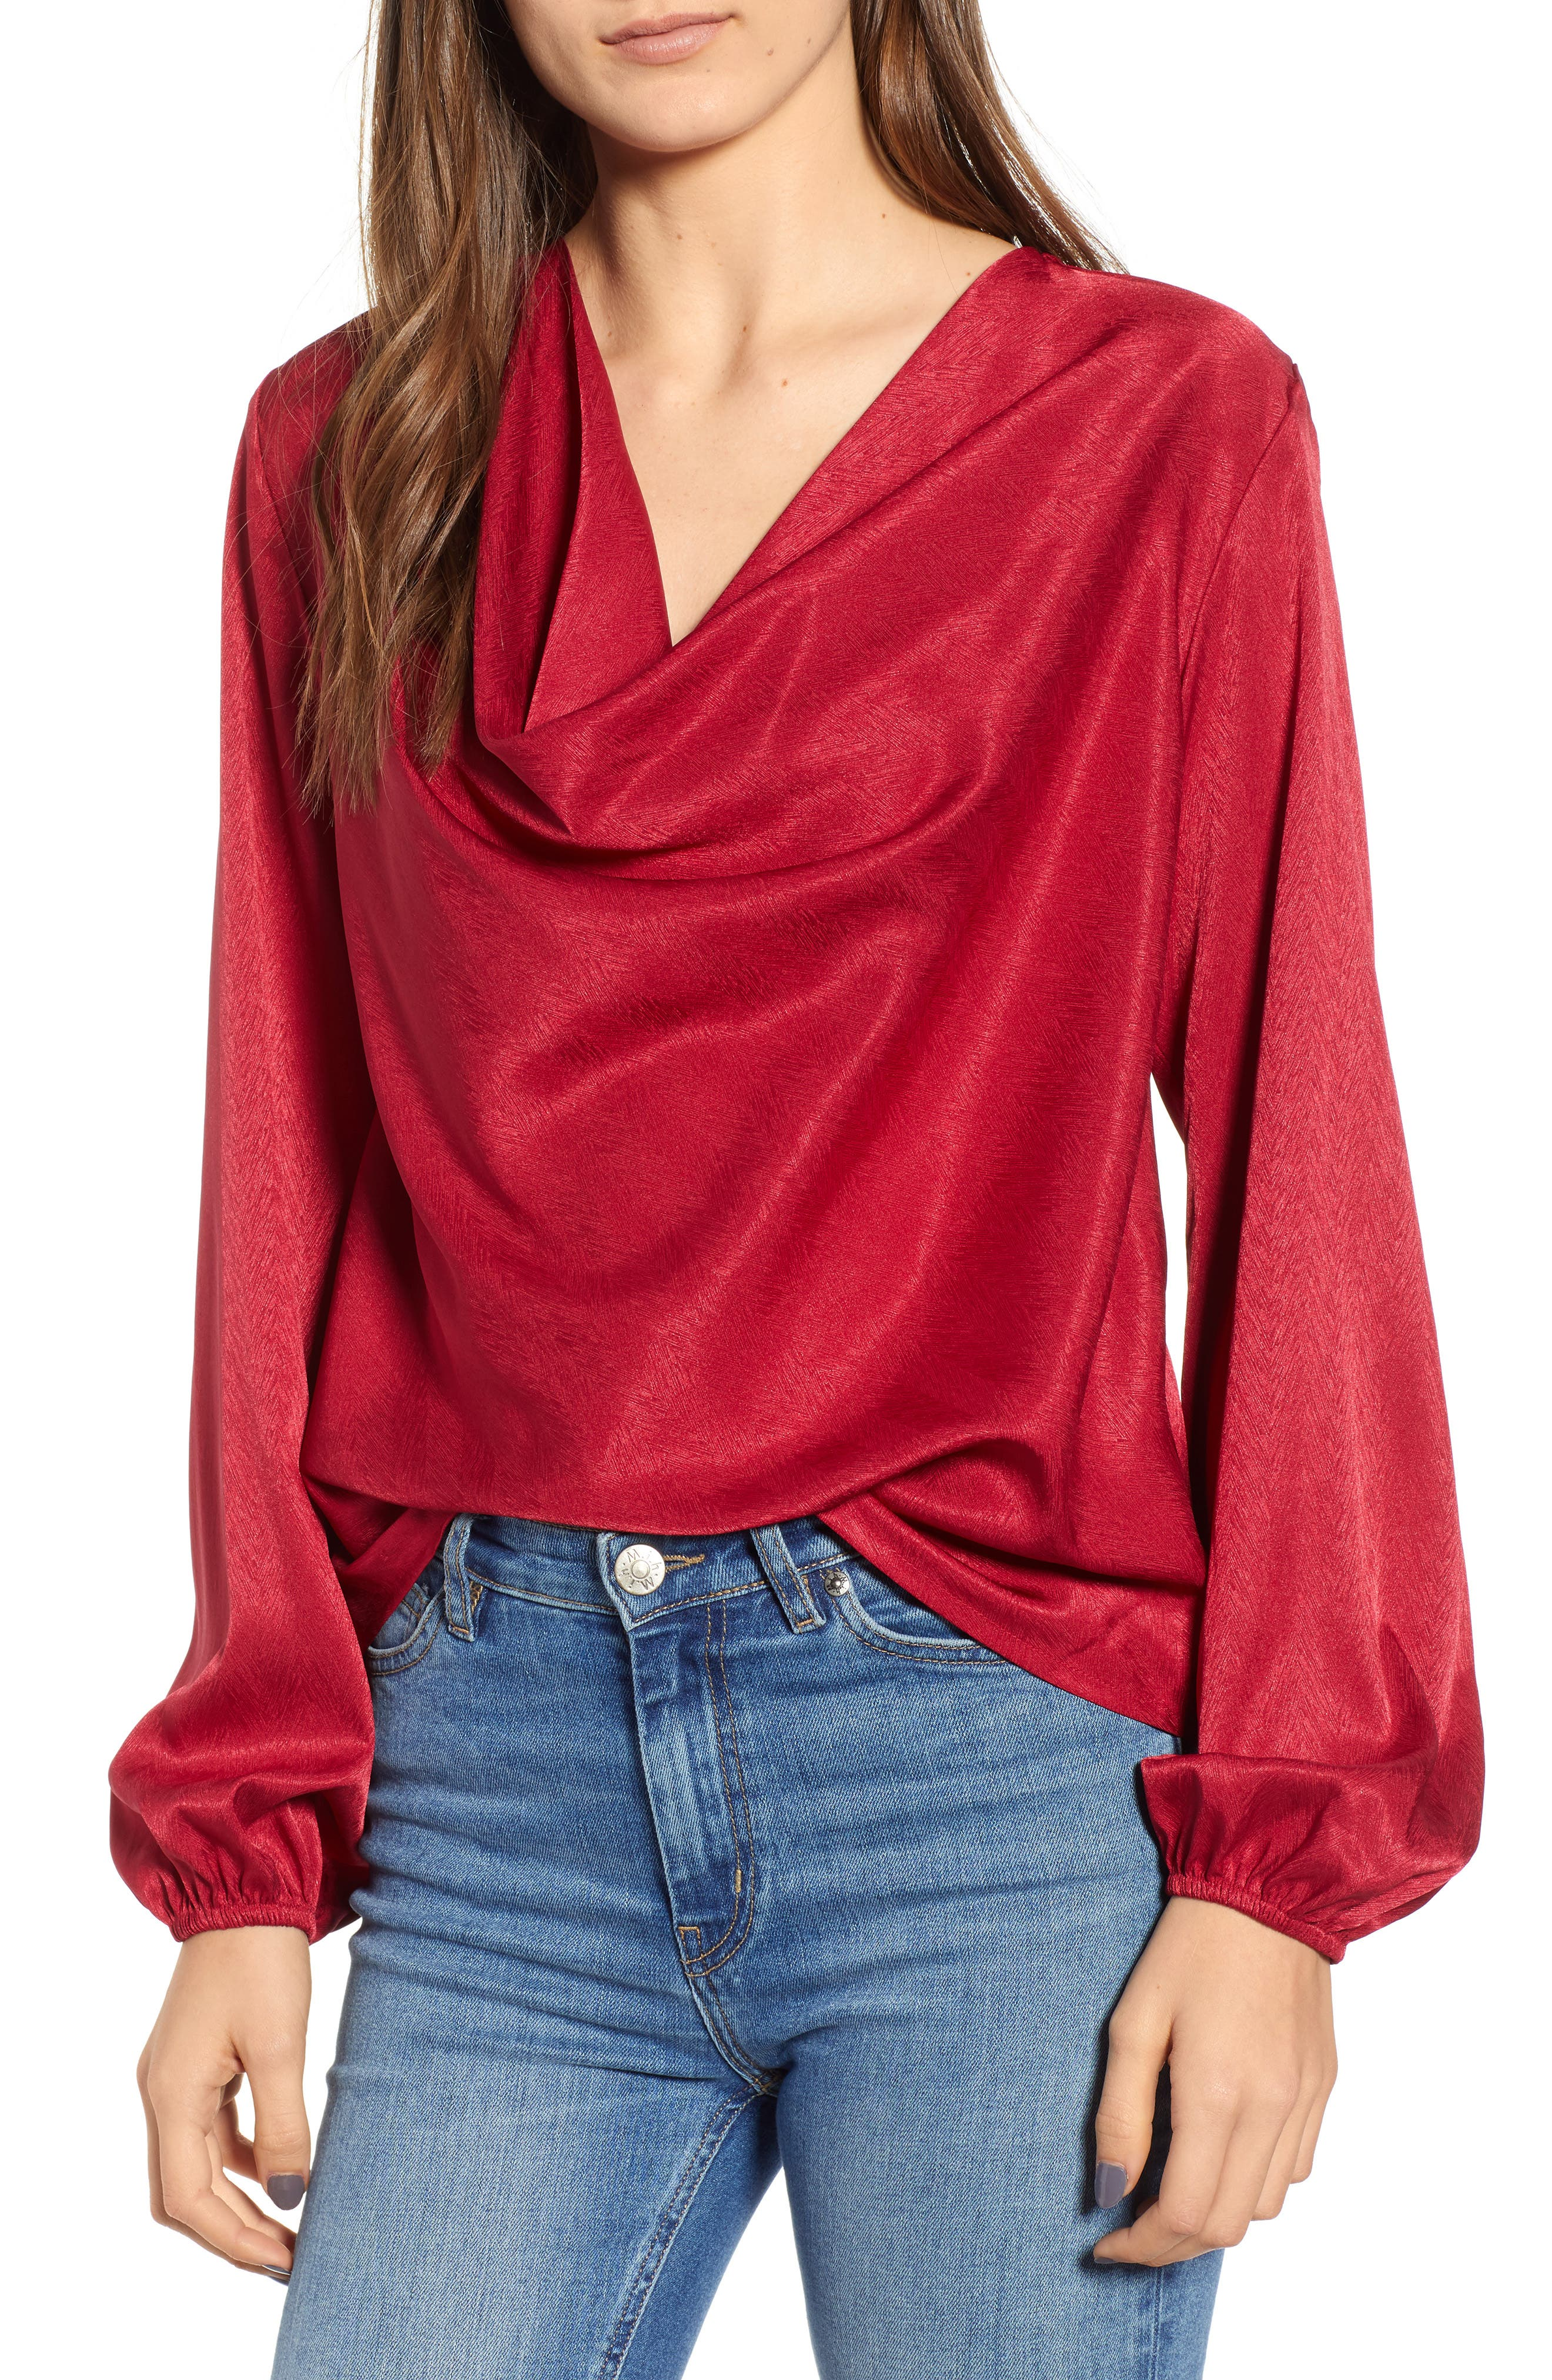 THE FIFTH LABEL, Lotti Cowl Neck Top, Main thumbnail 1, color, 600